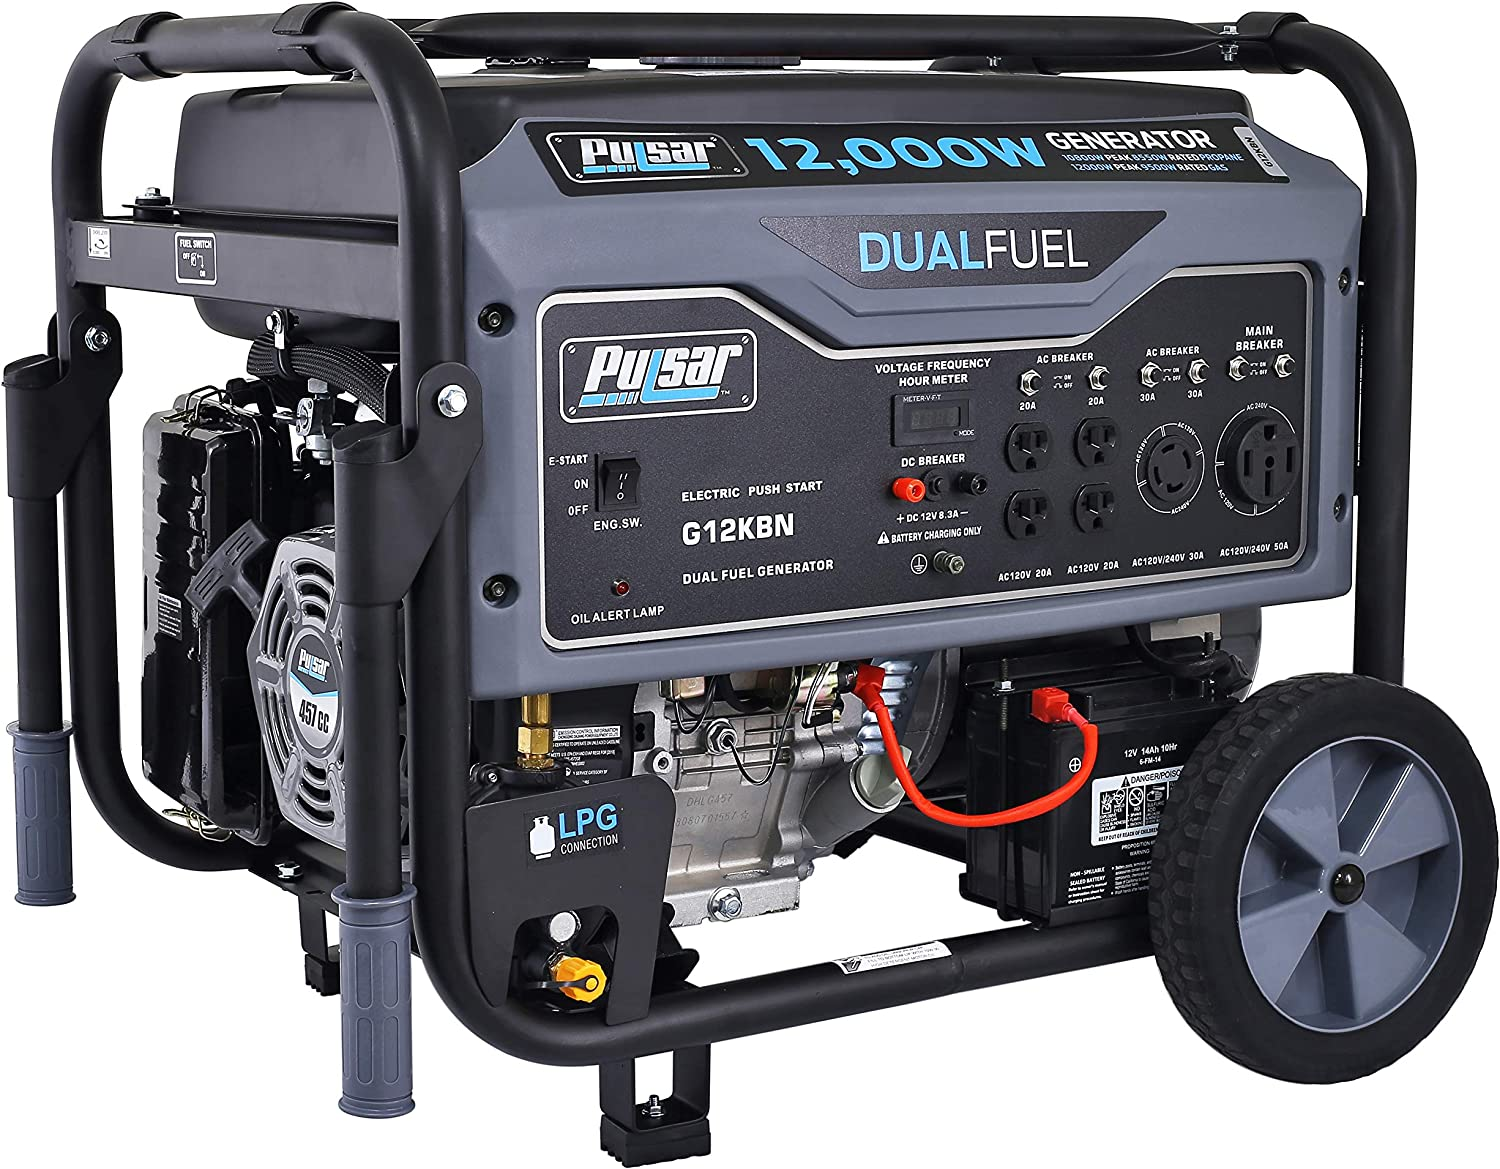 Pulsar G12KBN Heavy Duty Portable Dual Fuel Generator - 9500 Rated Watts & 12000 Peak Watts - Gas & LPG - Electric Start - Transfer Switch & RV Ready - CARB Compliant